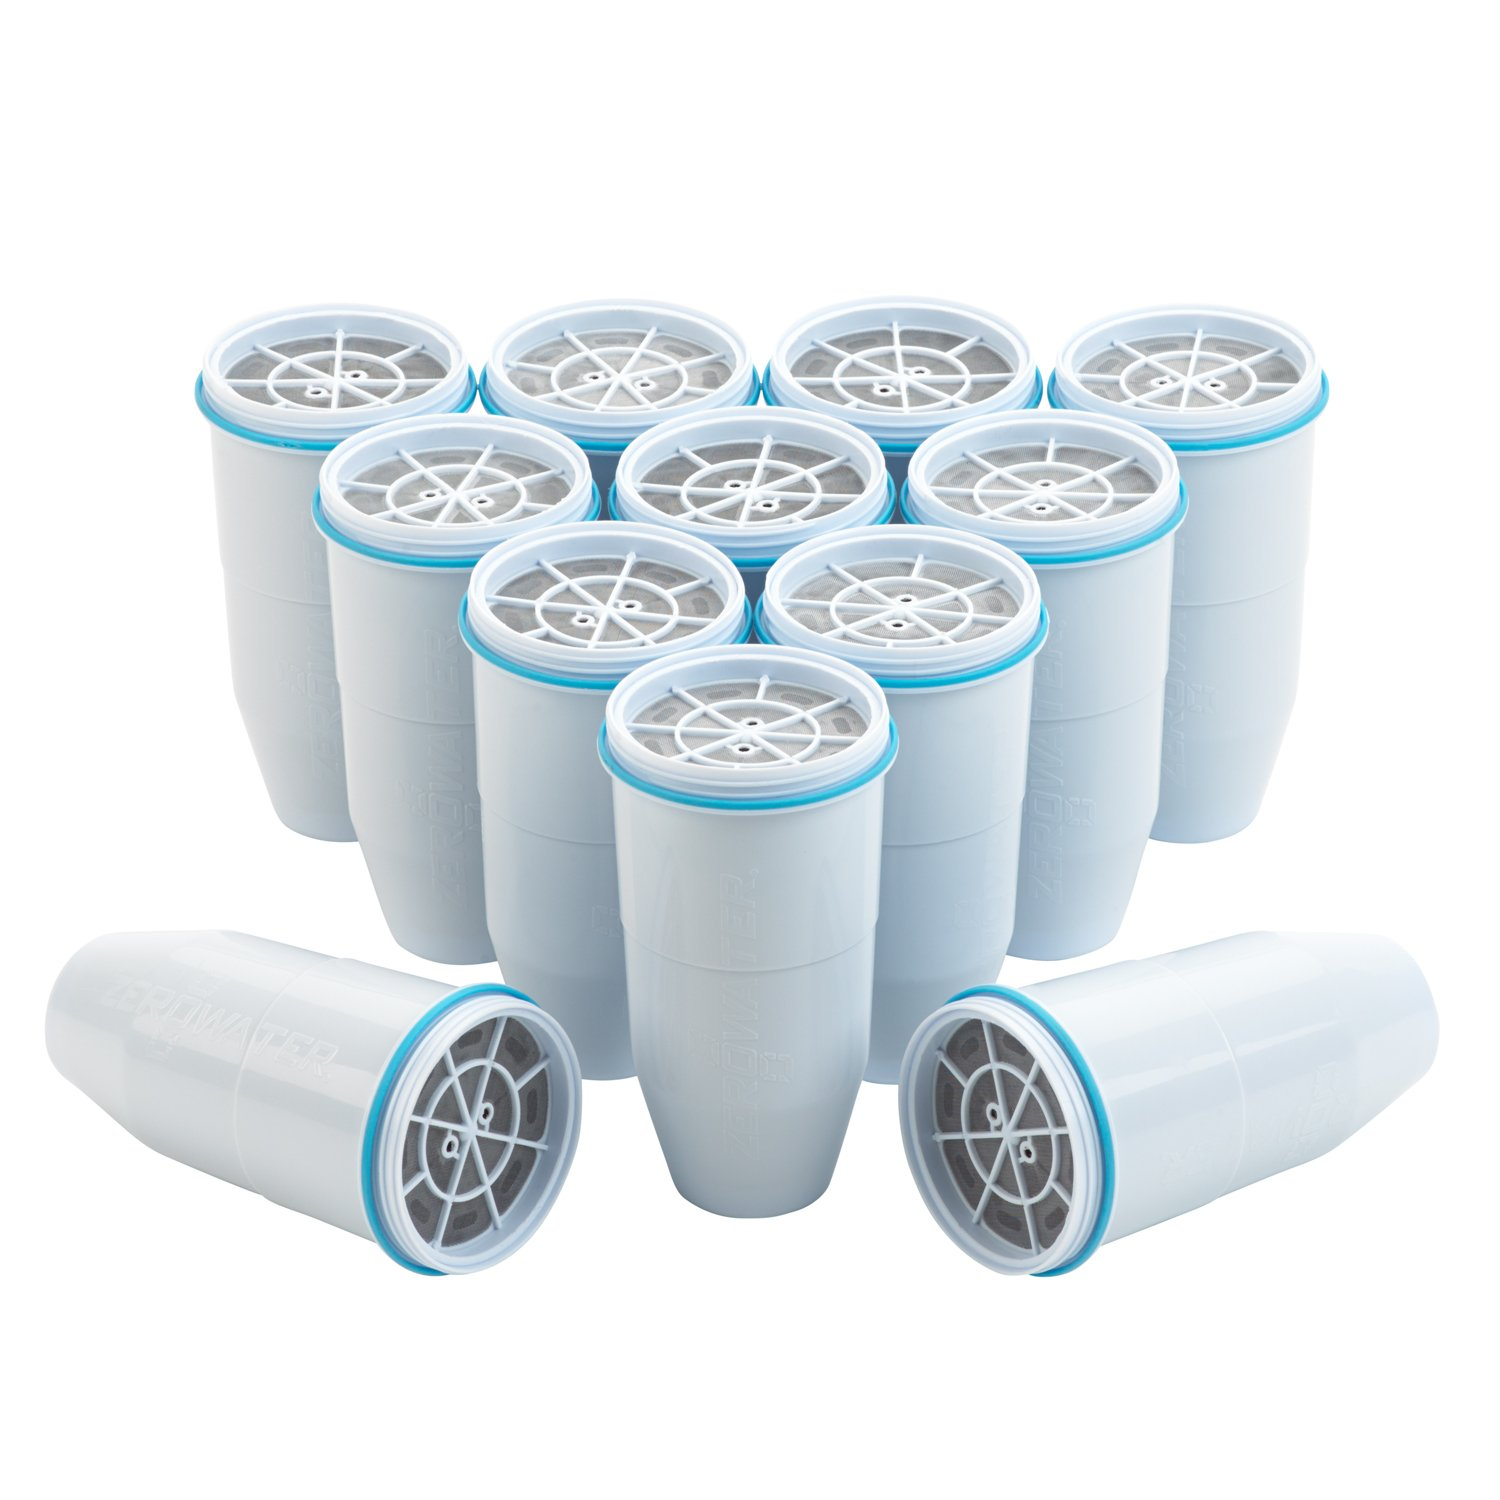 Zero Single Replacement Filters Water filter bottle 1pezzo(i) ZR-001